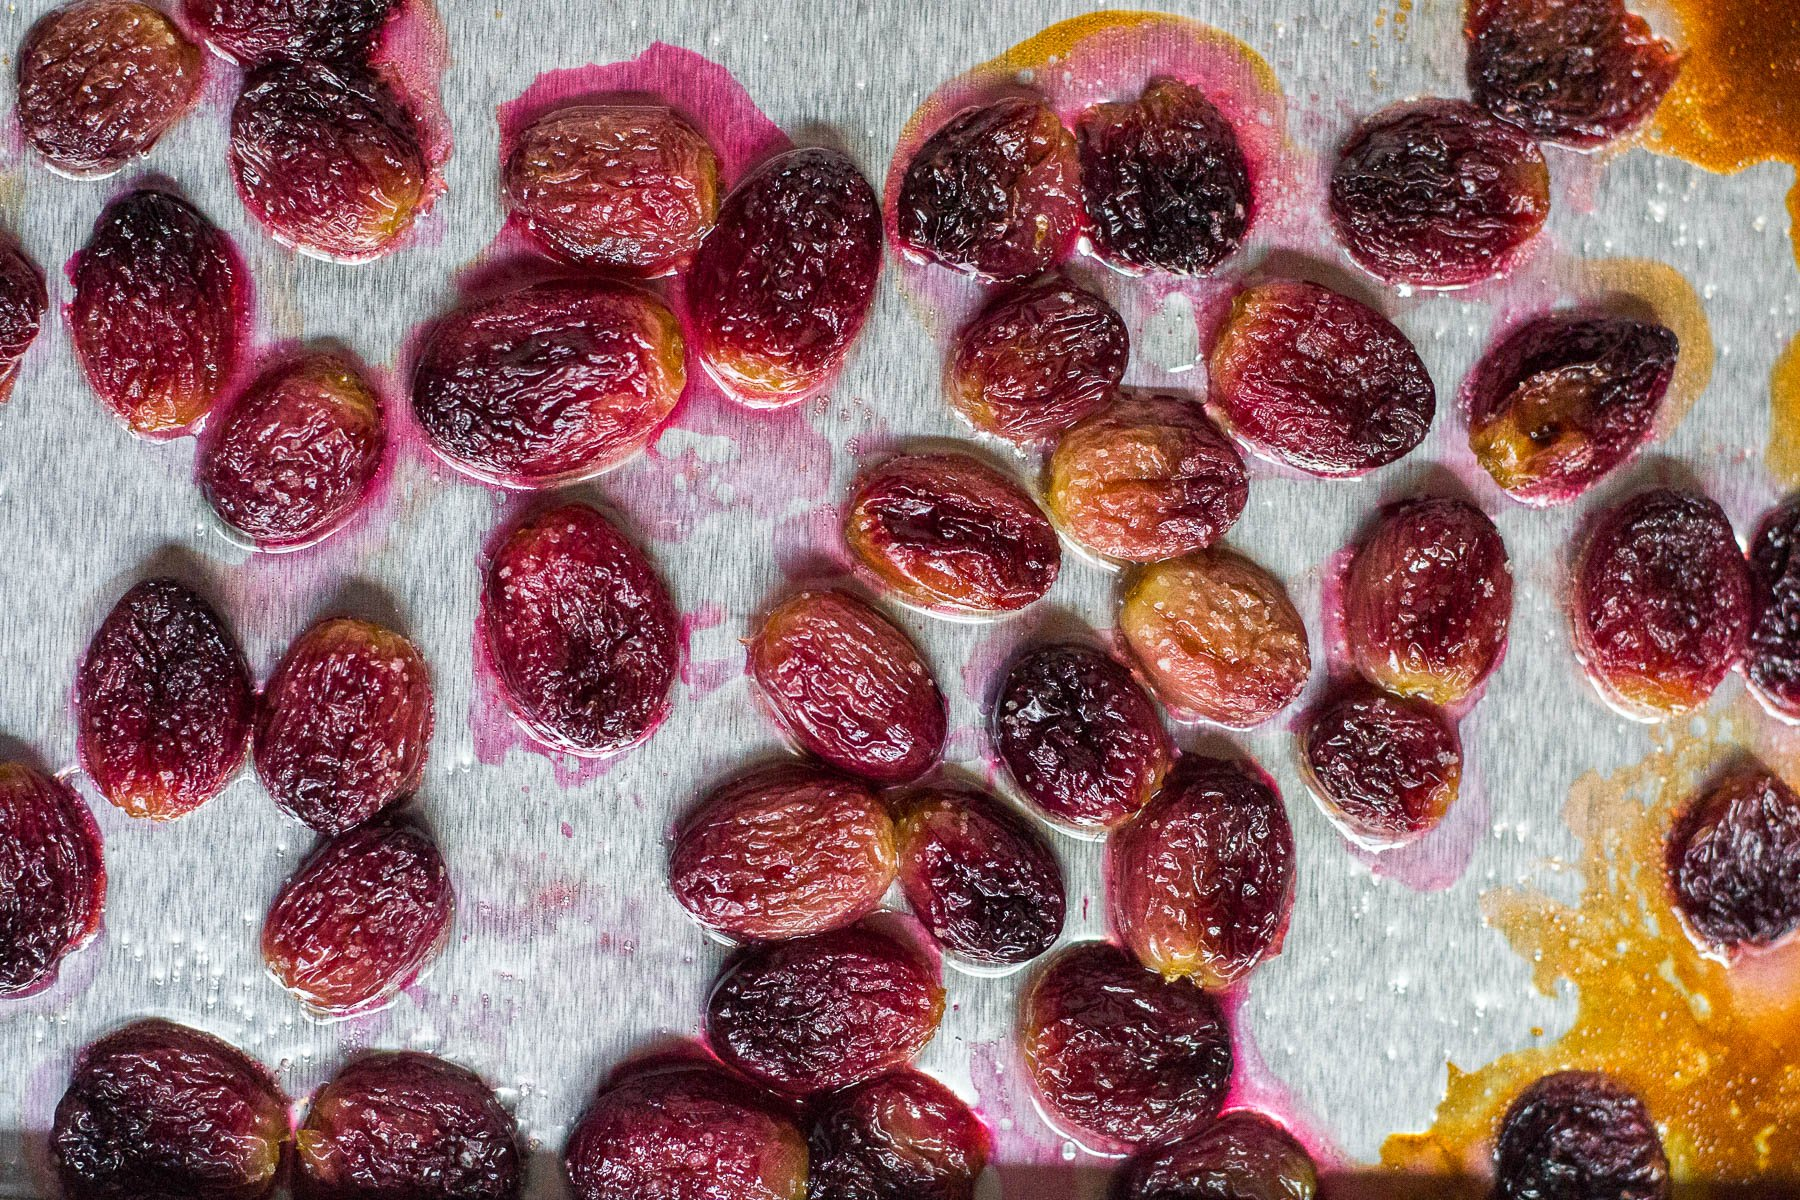 An aerial view of a baking sheet with roasted grapes tossed in oil and a pinch of sea salt.